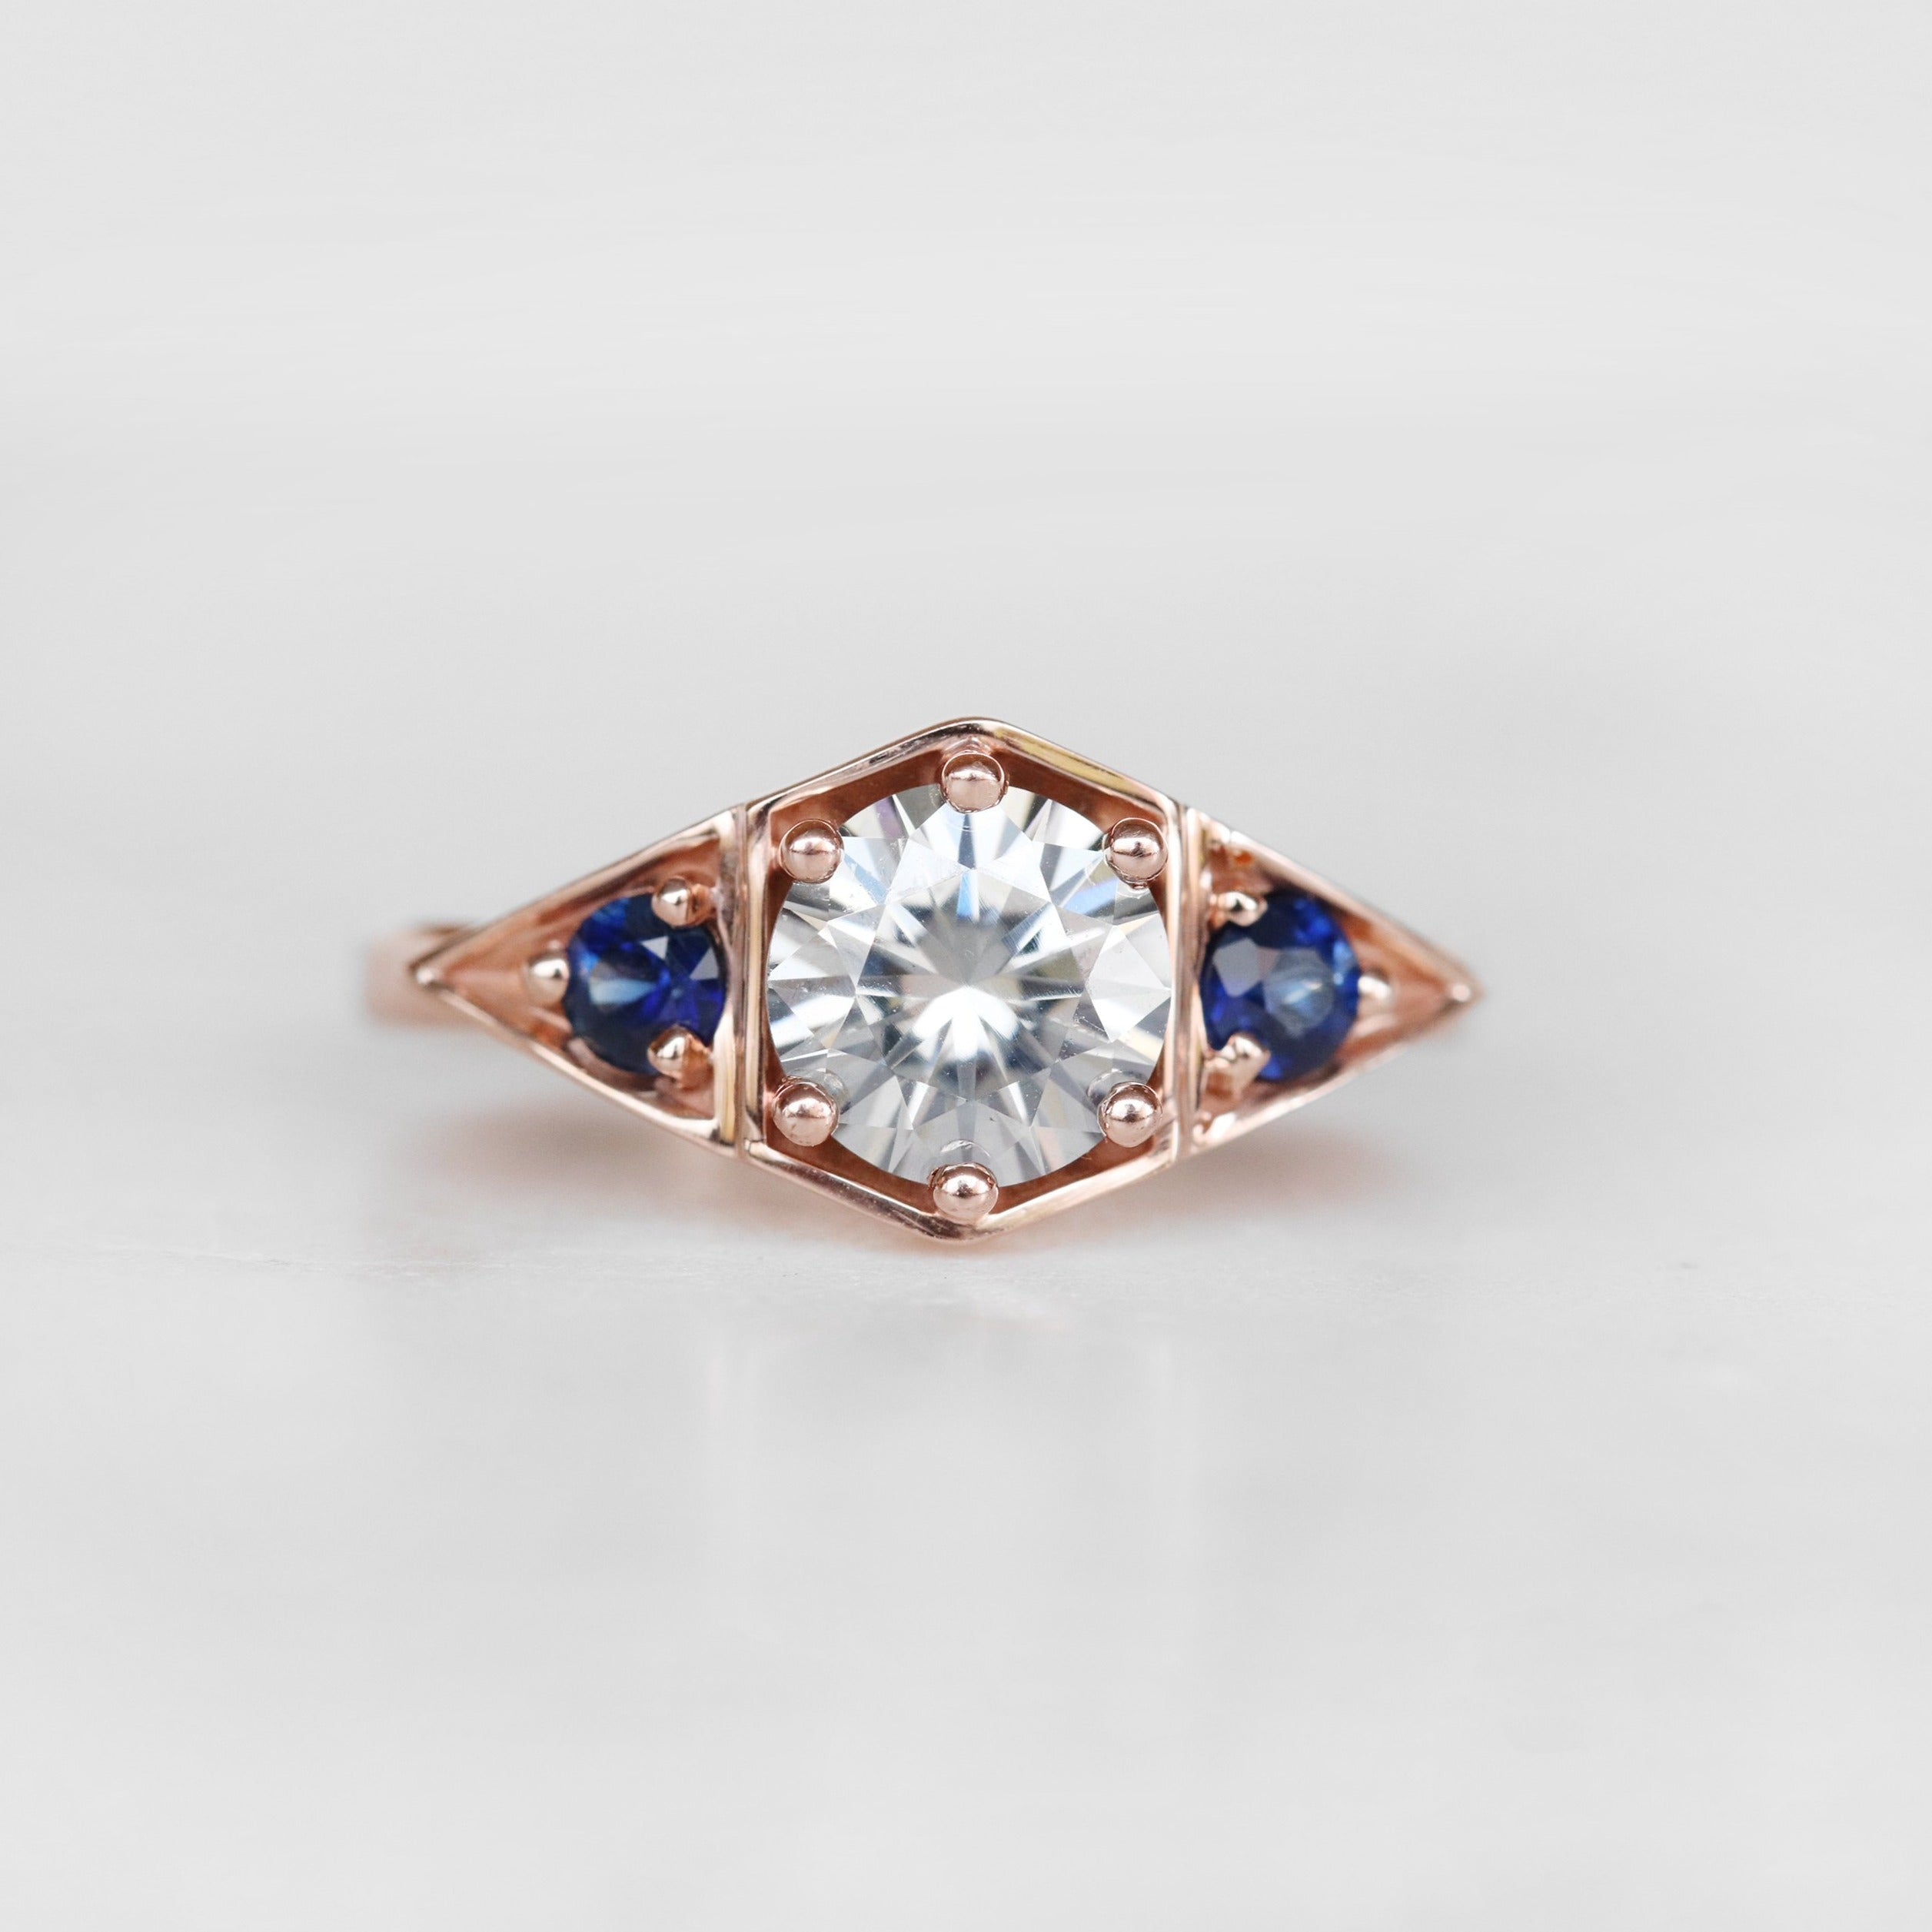 Cassia Ring with Gray Moissanite and Blue Sapphire Accents in 10k Rose Gold - Ready to Size and Ship - Midwinter Co. Alternative Bridal Rings and Modern Fine Jewelry